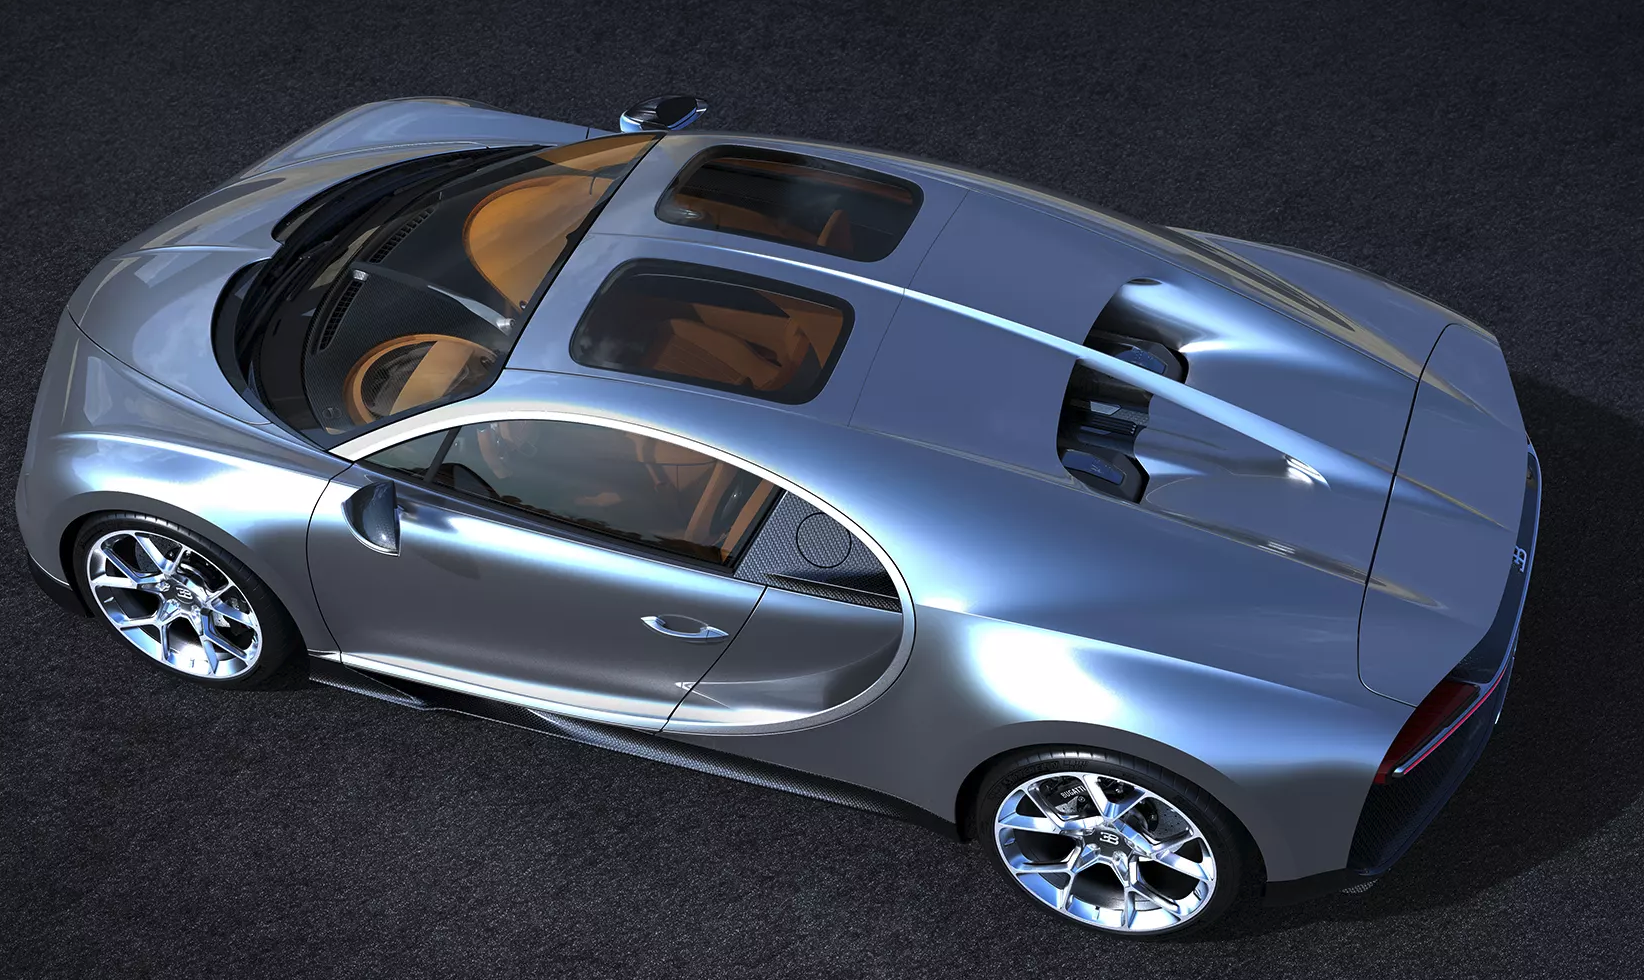 The Bugatti Chiron, But with More Glass